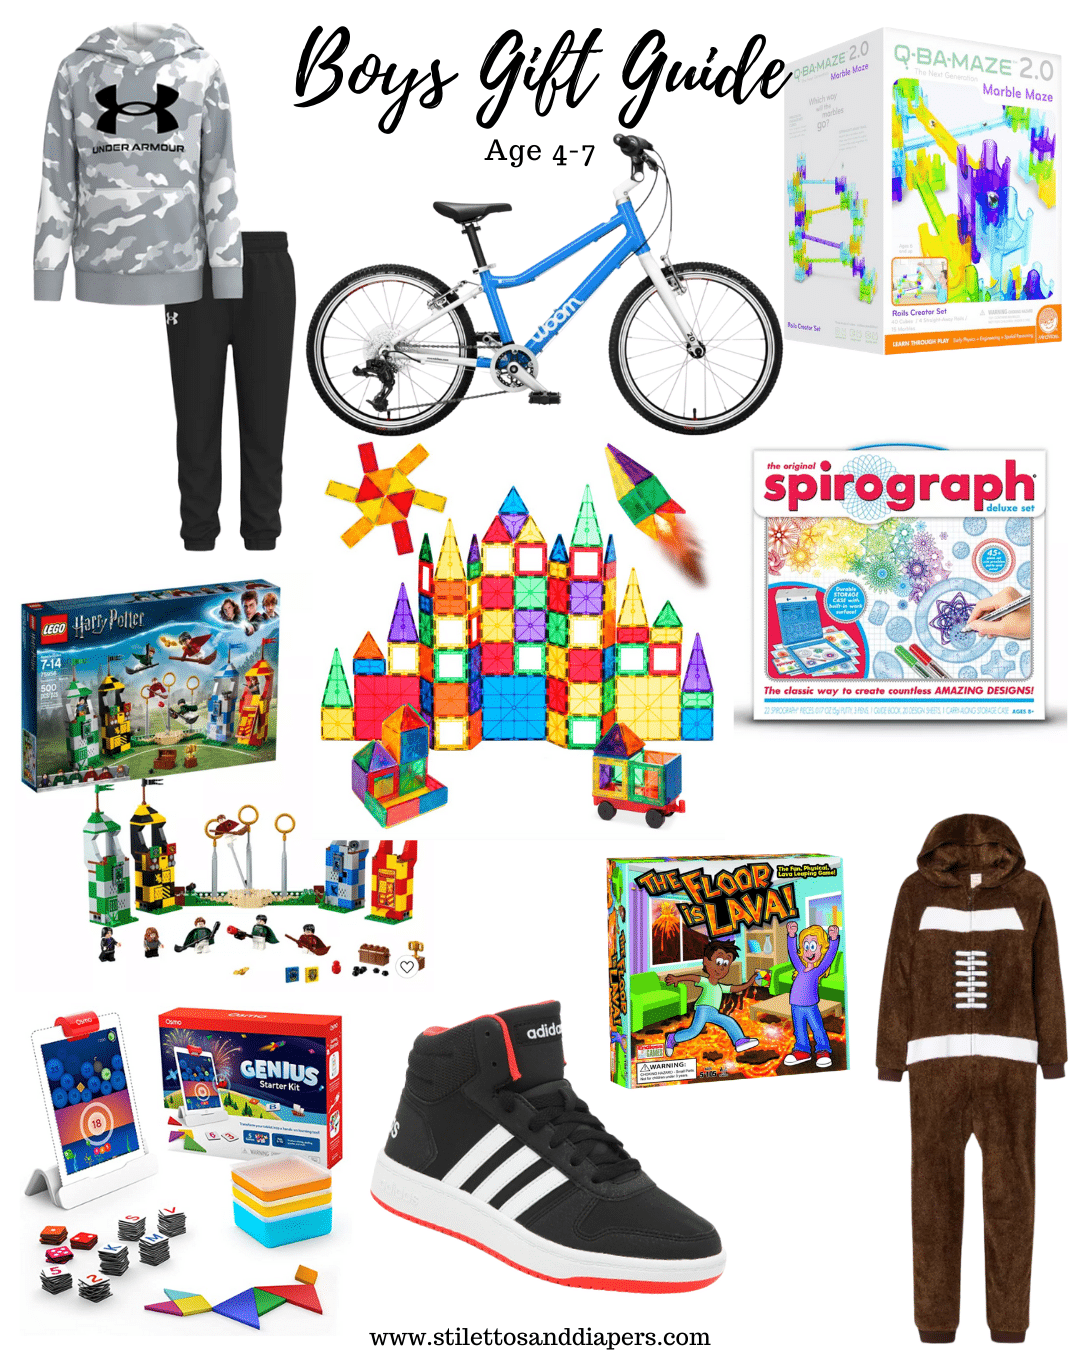 Boys Gift Guide 4-7, Boys Christmas Ideas, Stilettos and Diapers